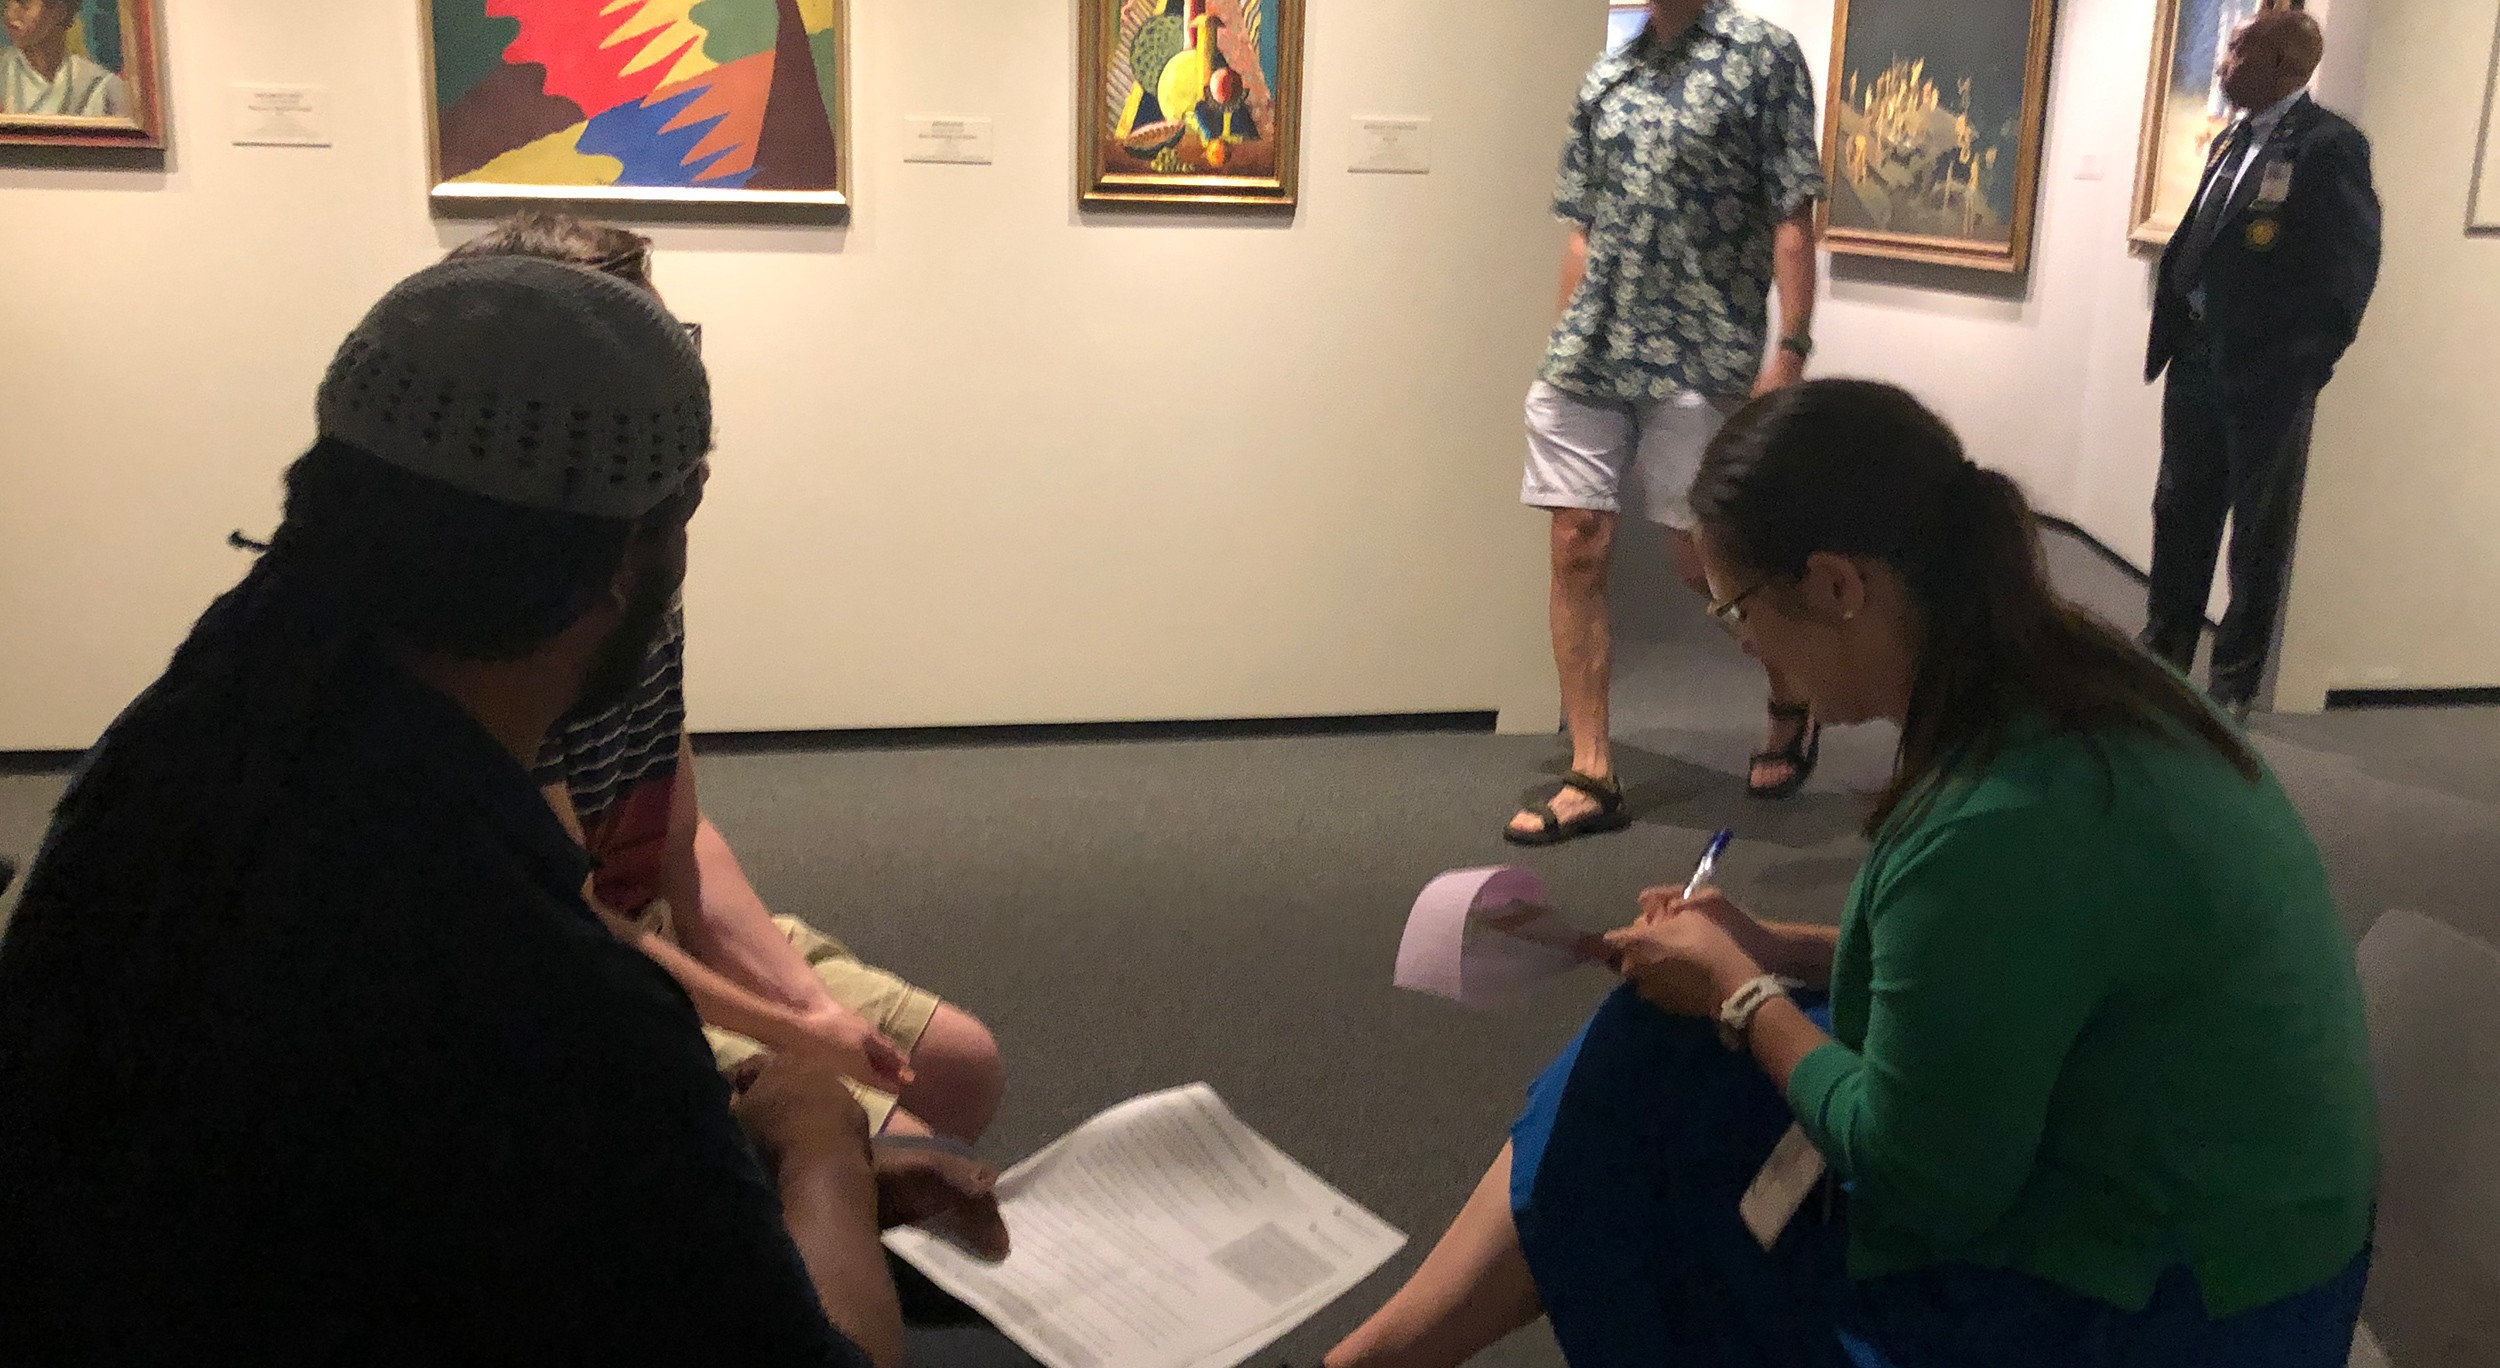 Museum staff members interviewing a visitor in a gallery filled with early modern art works.